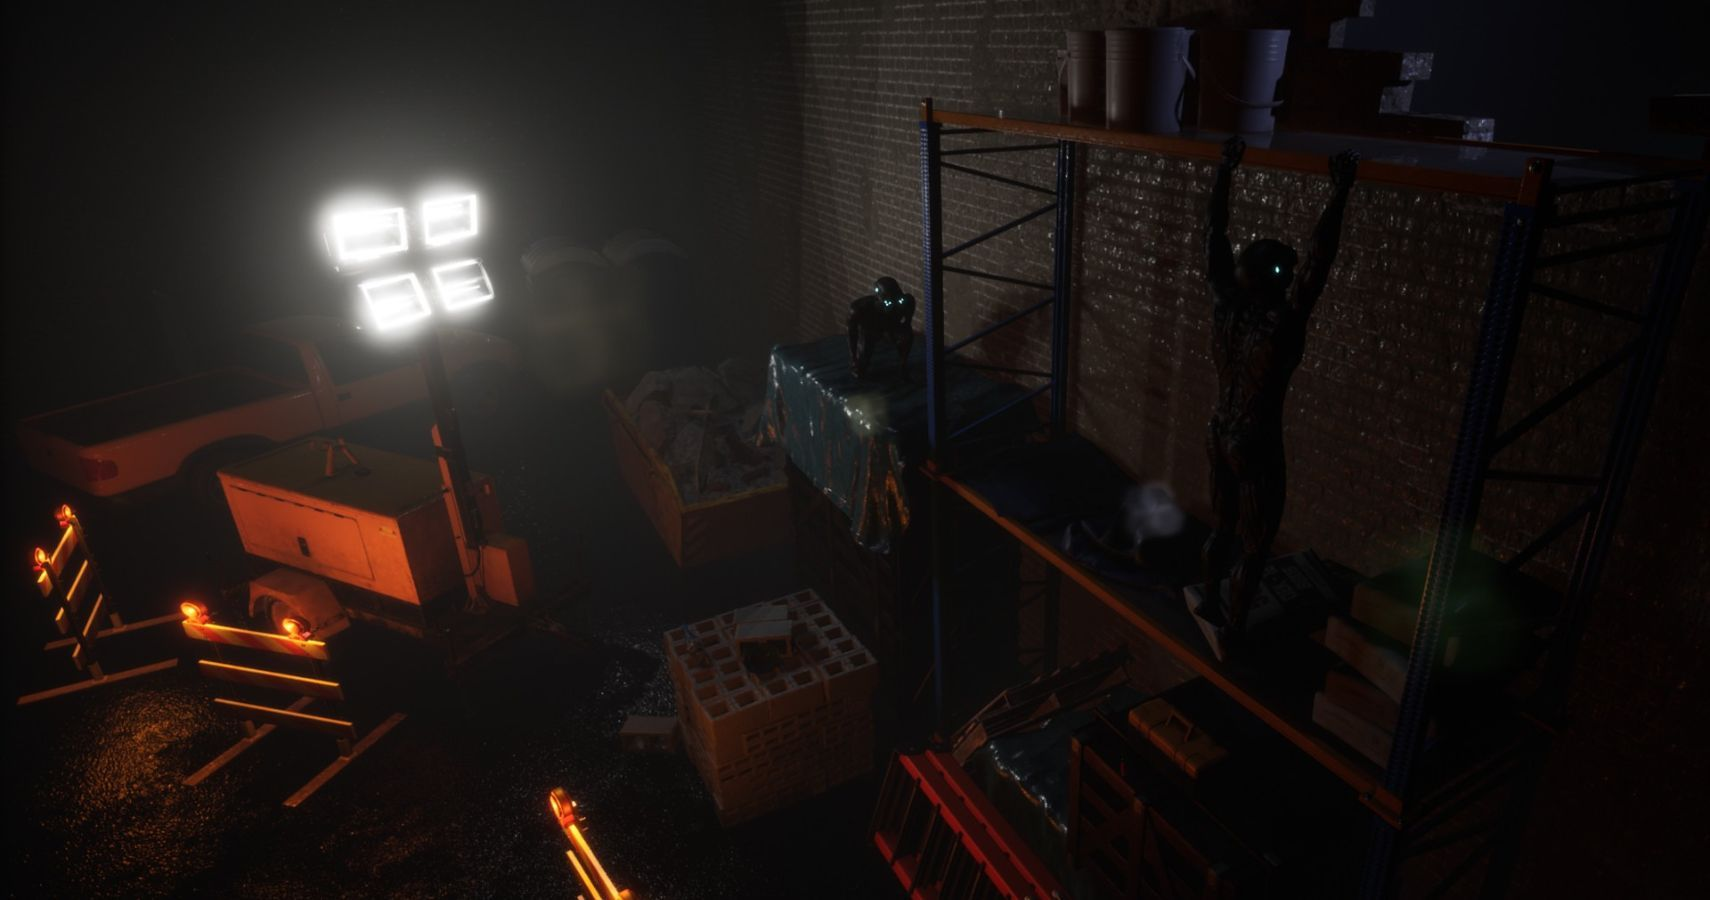 """Splinter Cell Multiplayer Mode """"Spies Vs Mercs"""" Lives On With New Indie Game Spectre"""